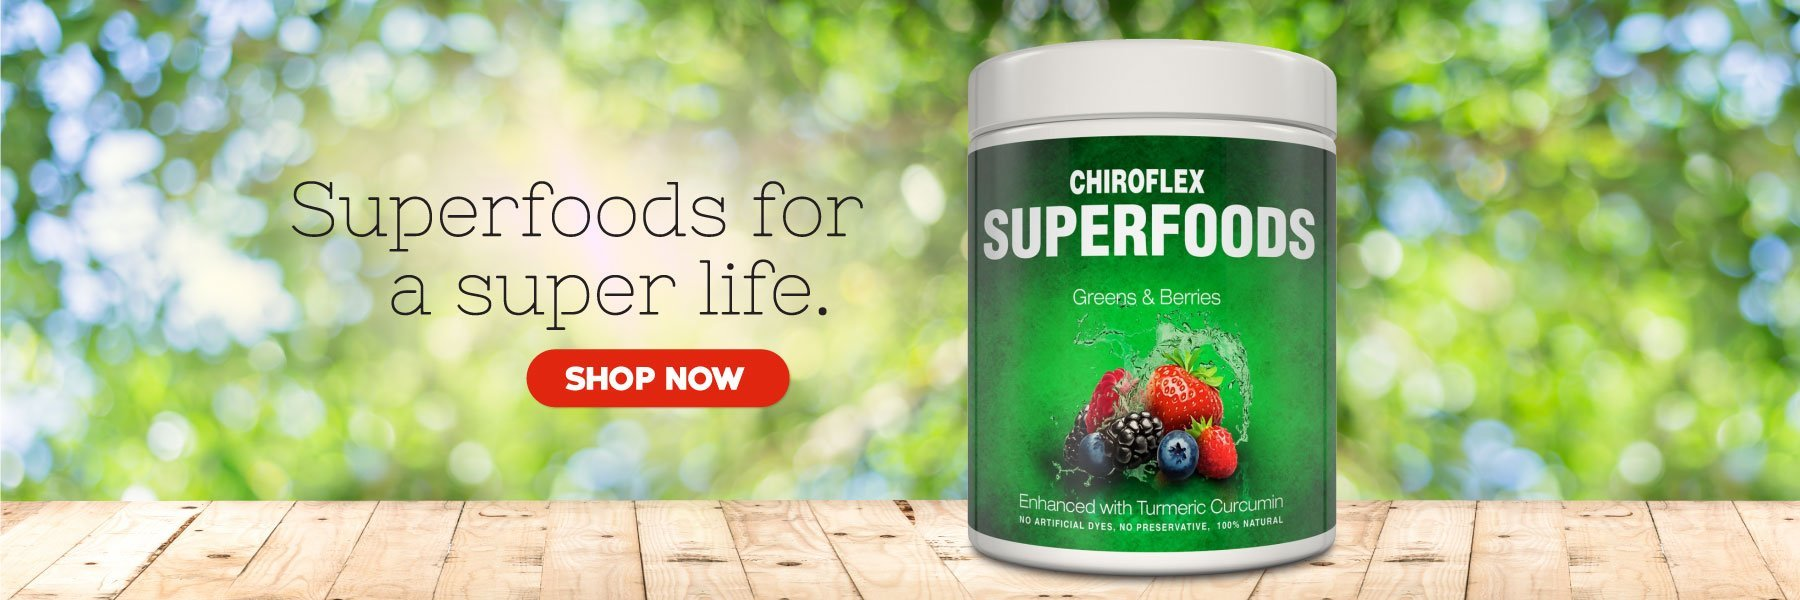 ChiroFlex Superfoods